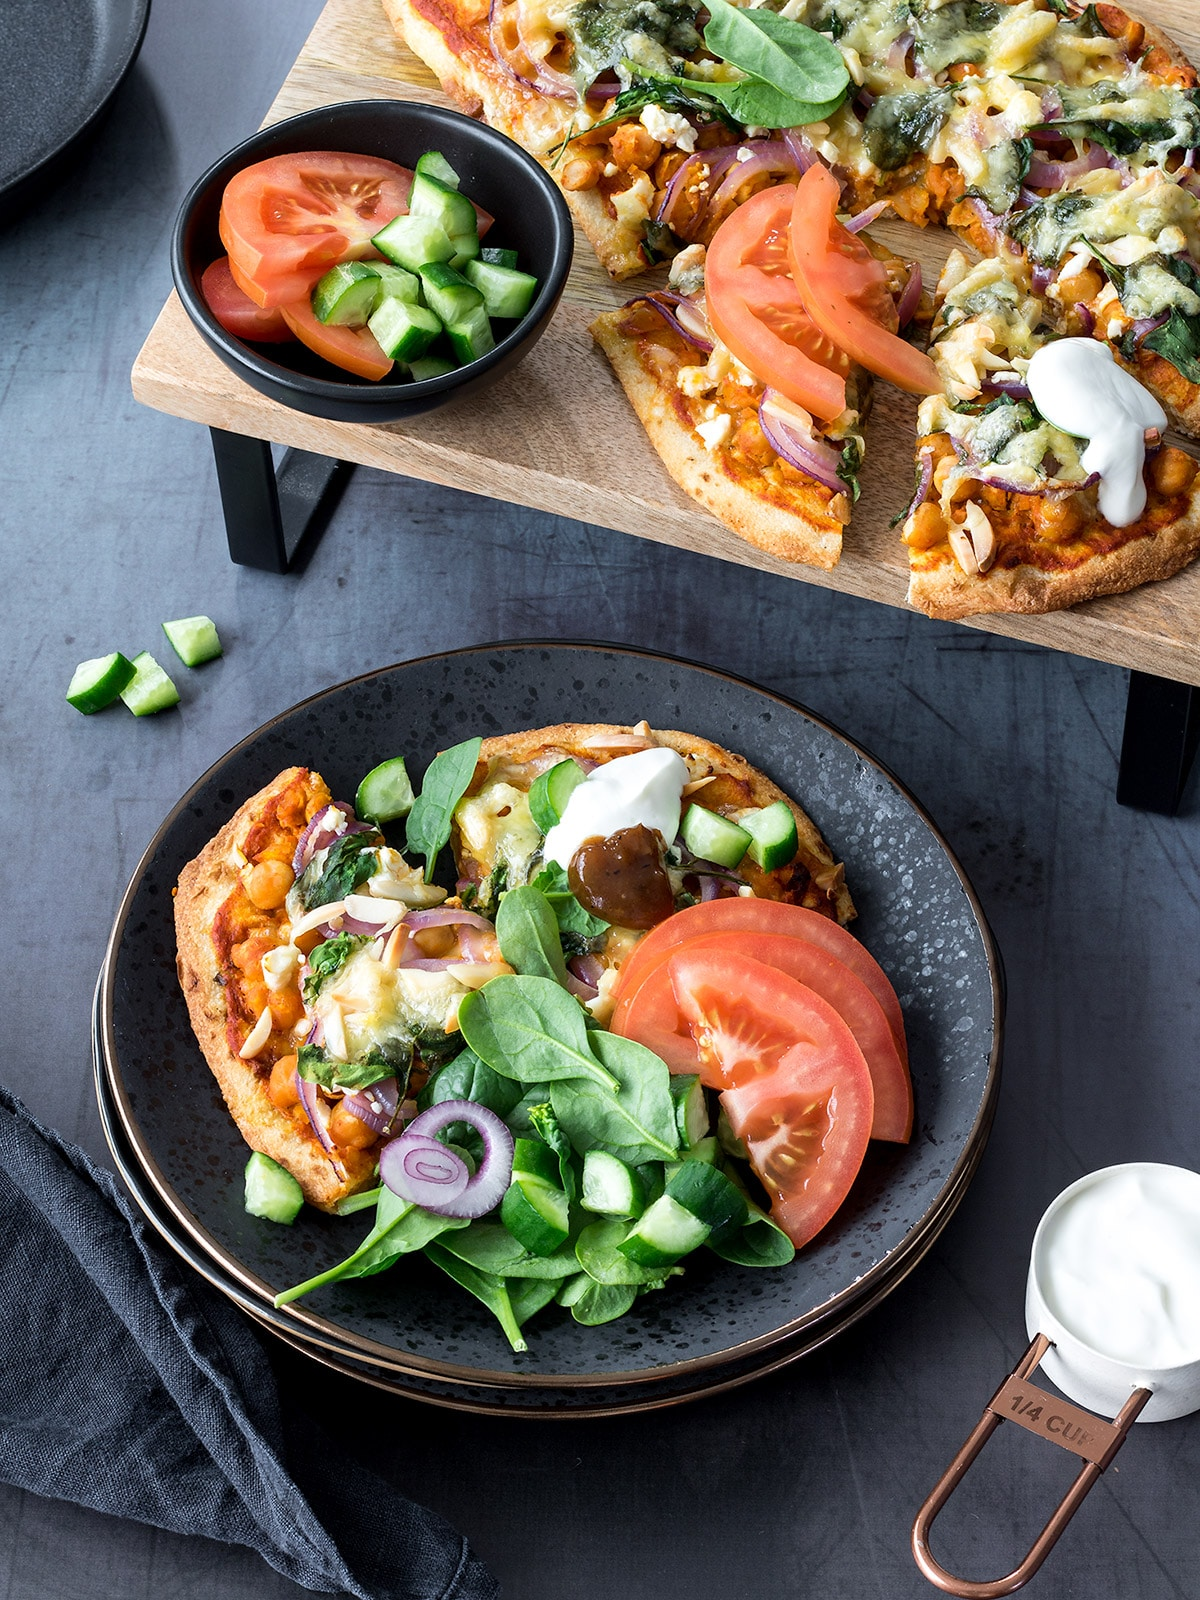 Indian-spiced tandoori chickpea pizzas are a moreish vegetarian meal. Naan bread provides a sturdy base for all the toppings. Don't forget a dollop of yoghurt and chutney - this finishes the pizzas off perfectly!